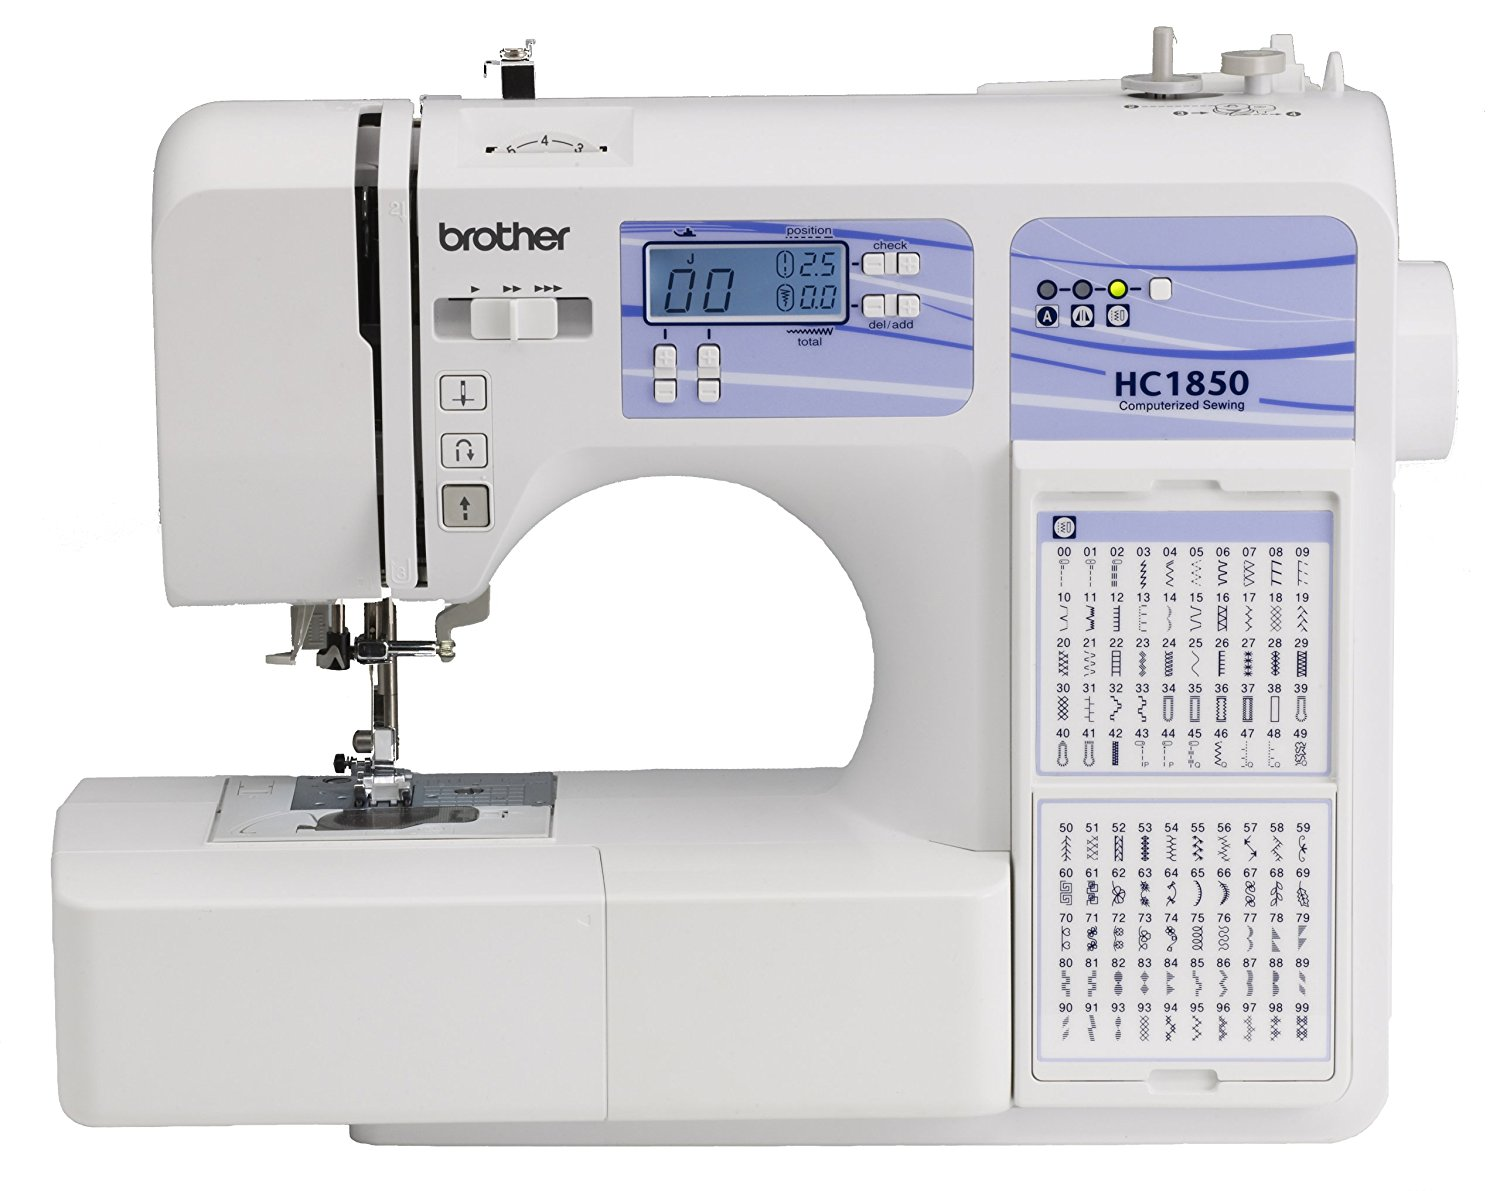 Best Brother Sewing & Embroidery Machine Review: Are you a quilter? You already know what Brother has for you!